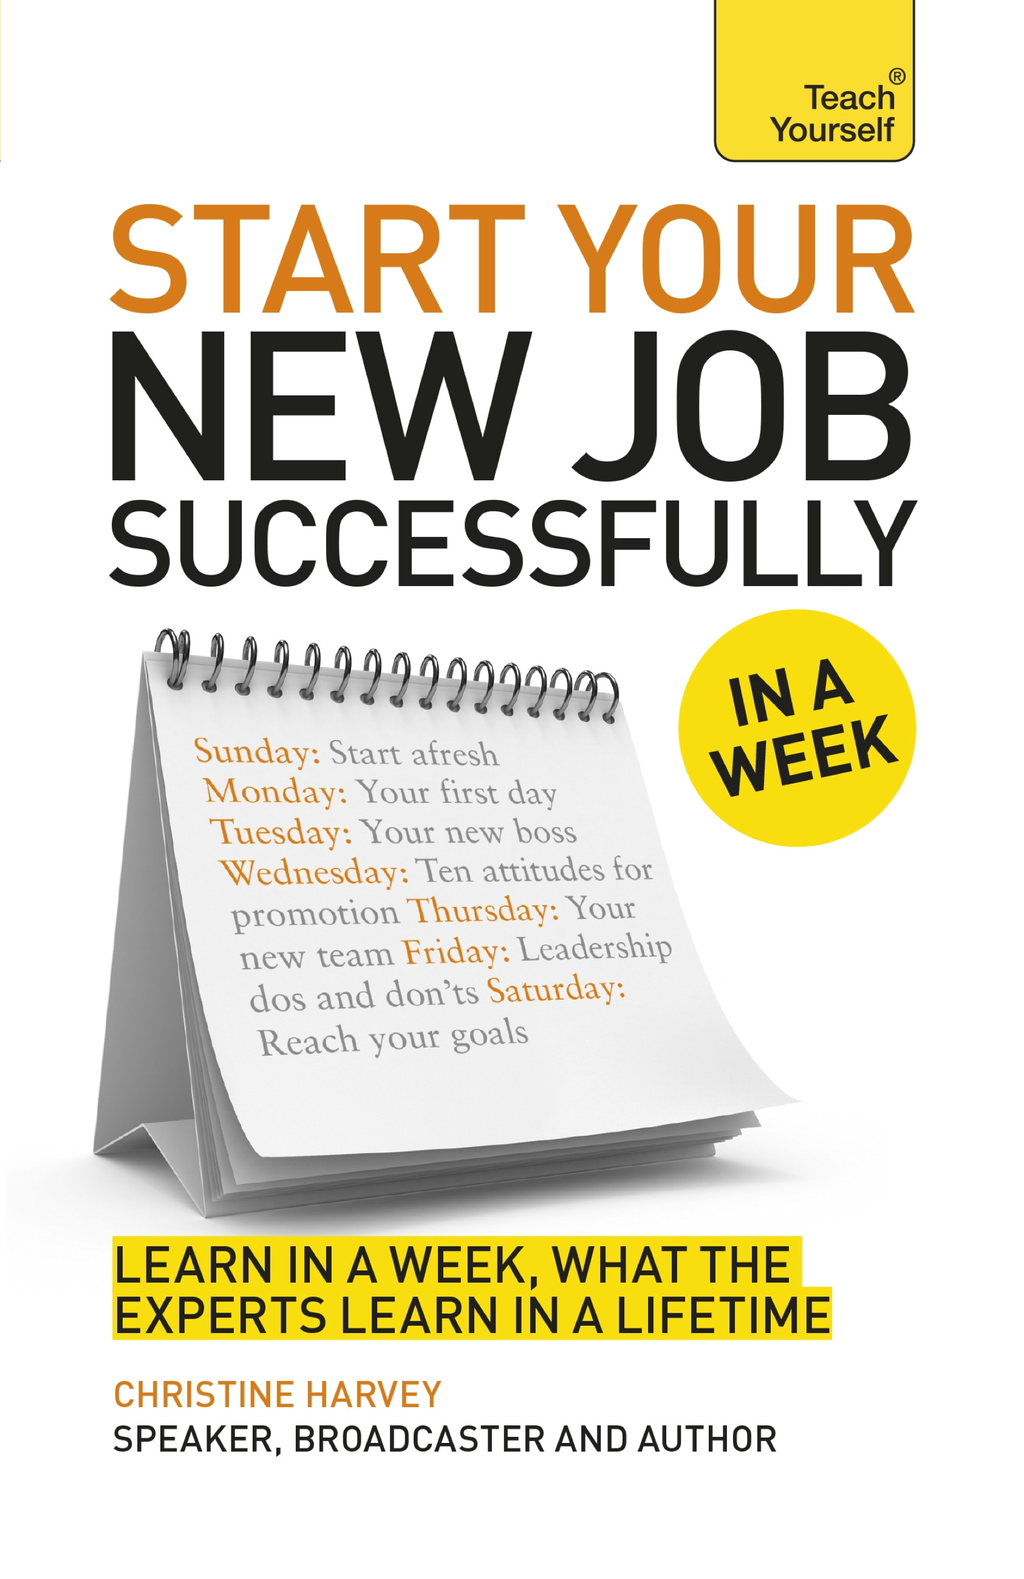 Start Your New Job Successfully in a Week: Teach Yourself